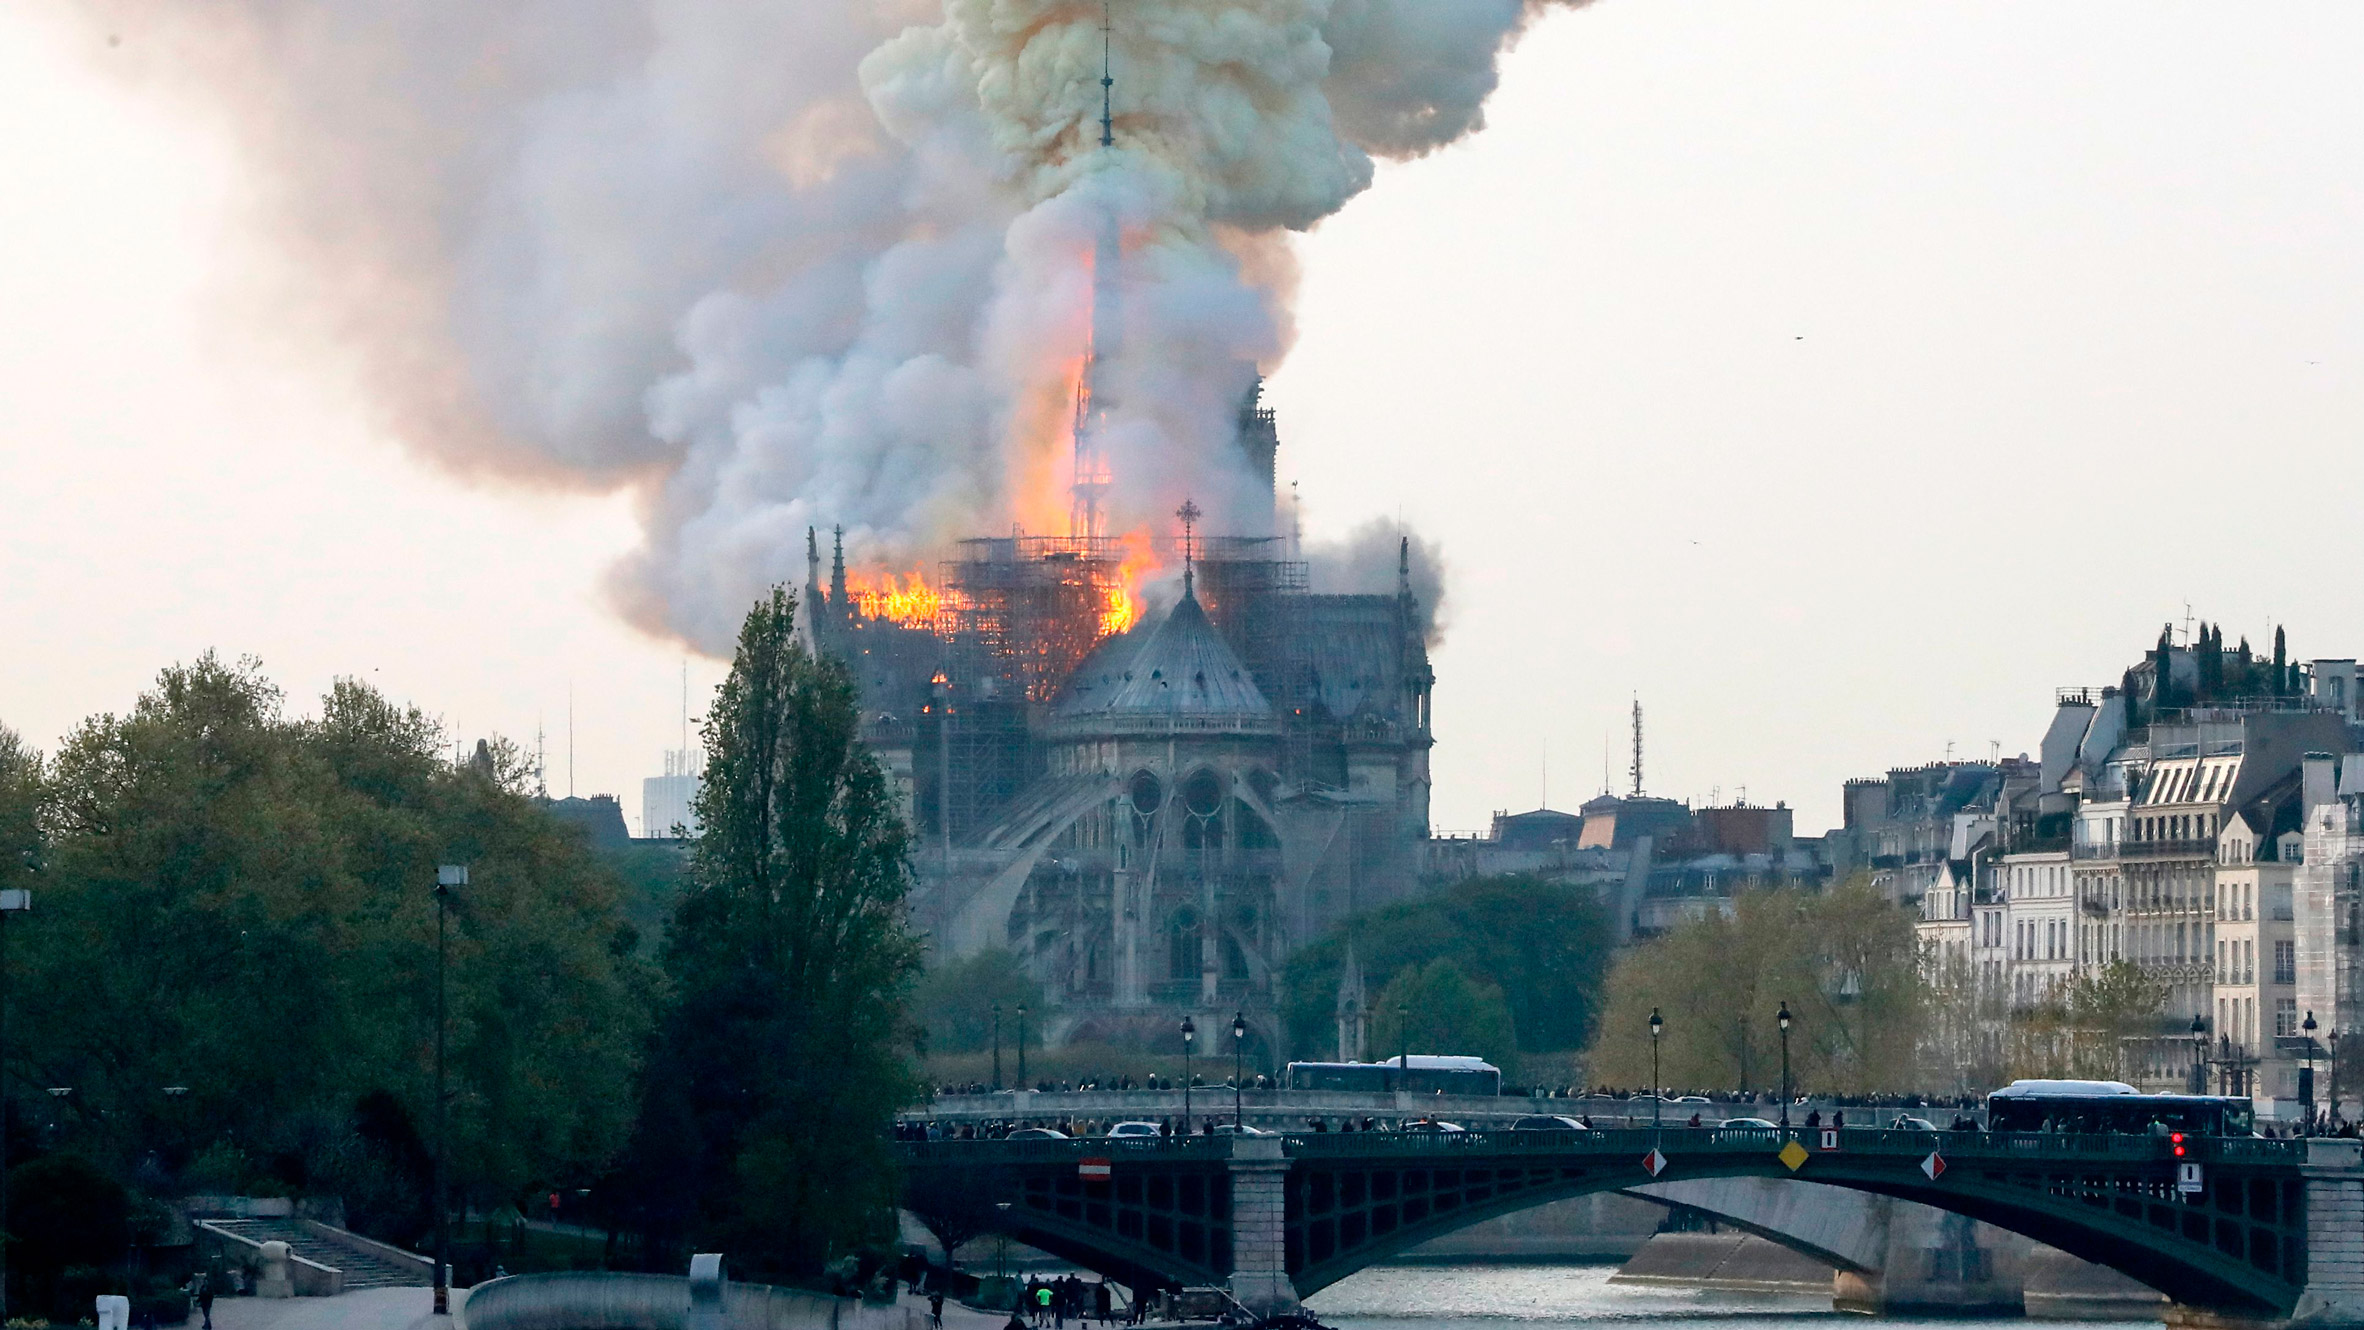 Notre-Dame de Paris fire (15 April 2019)